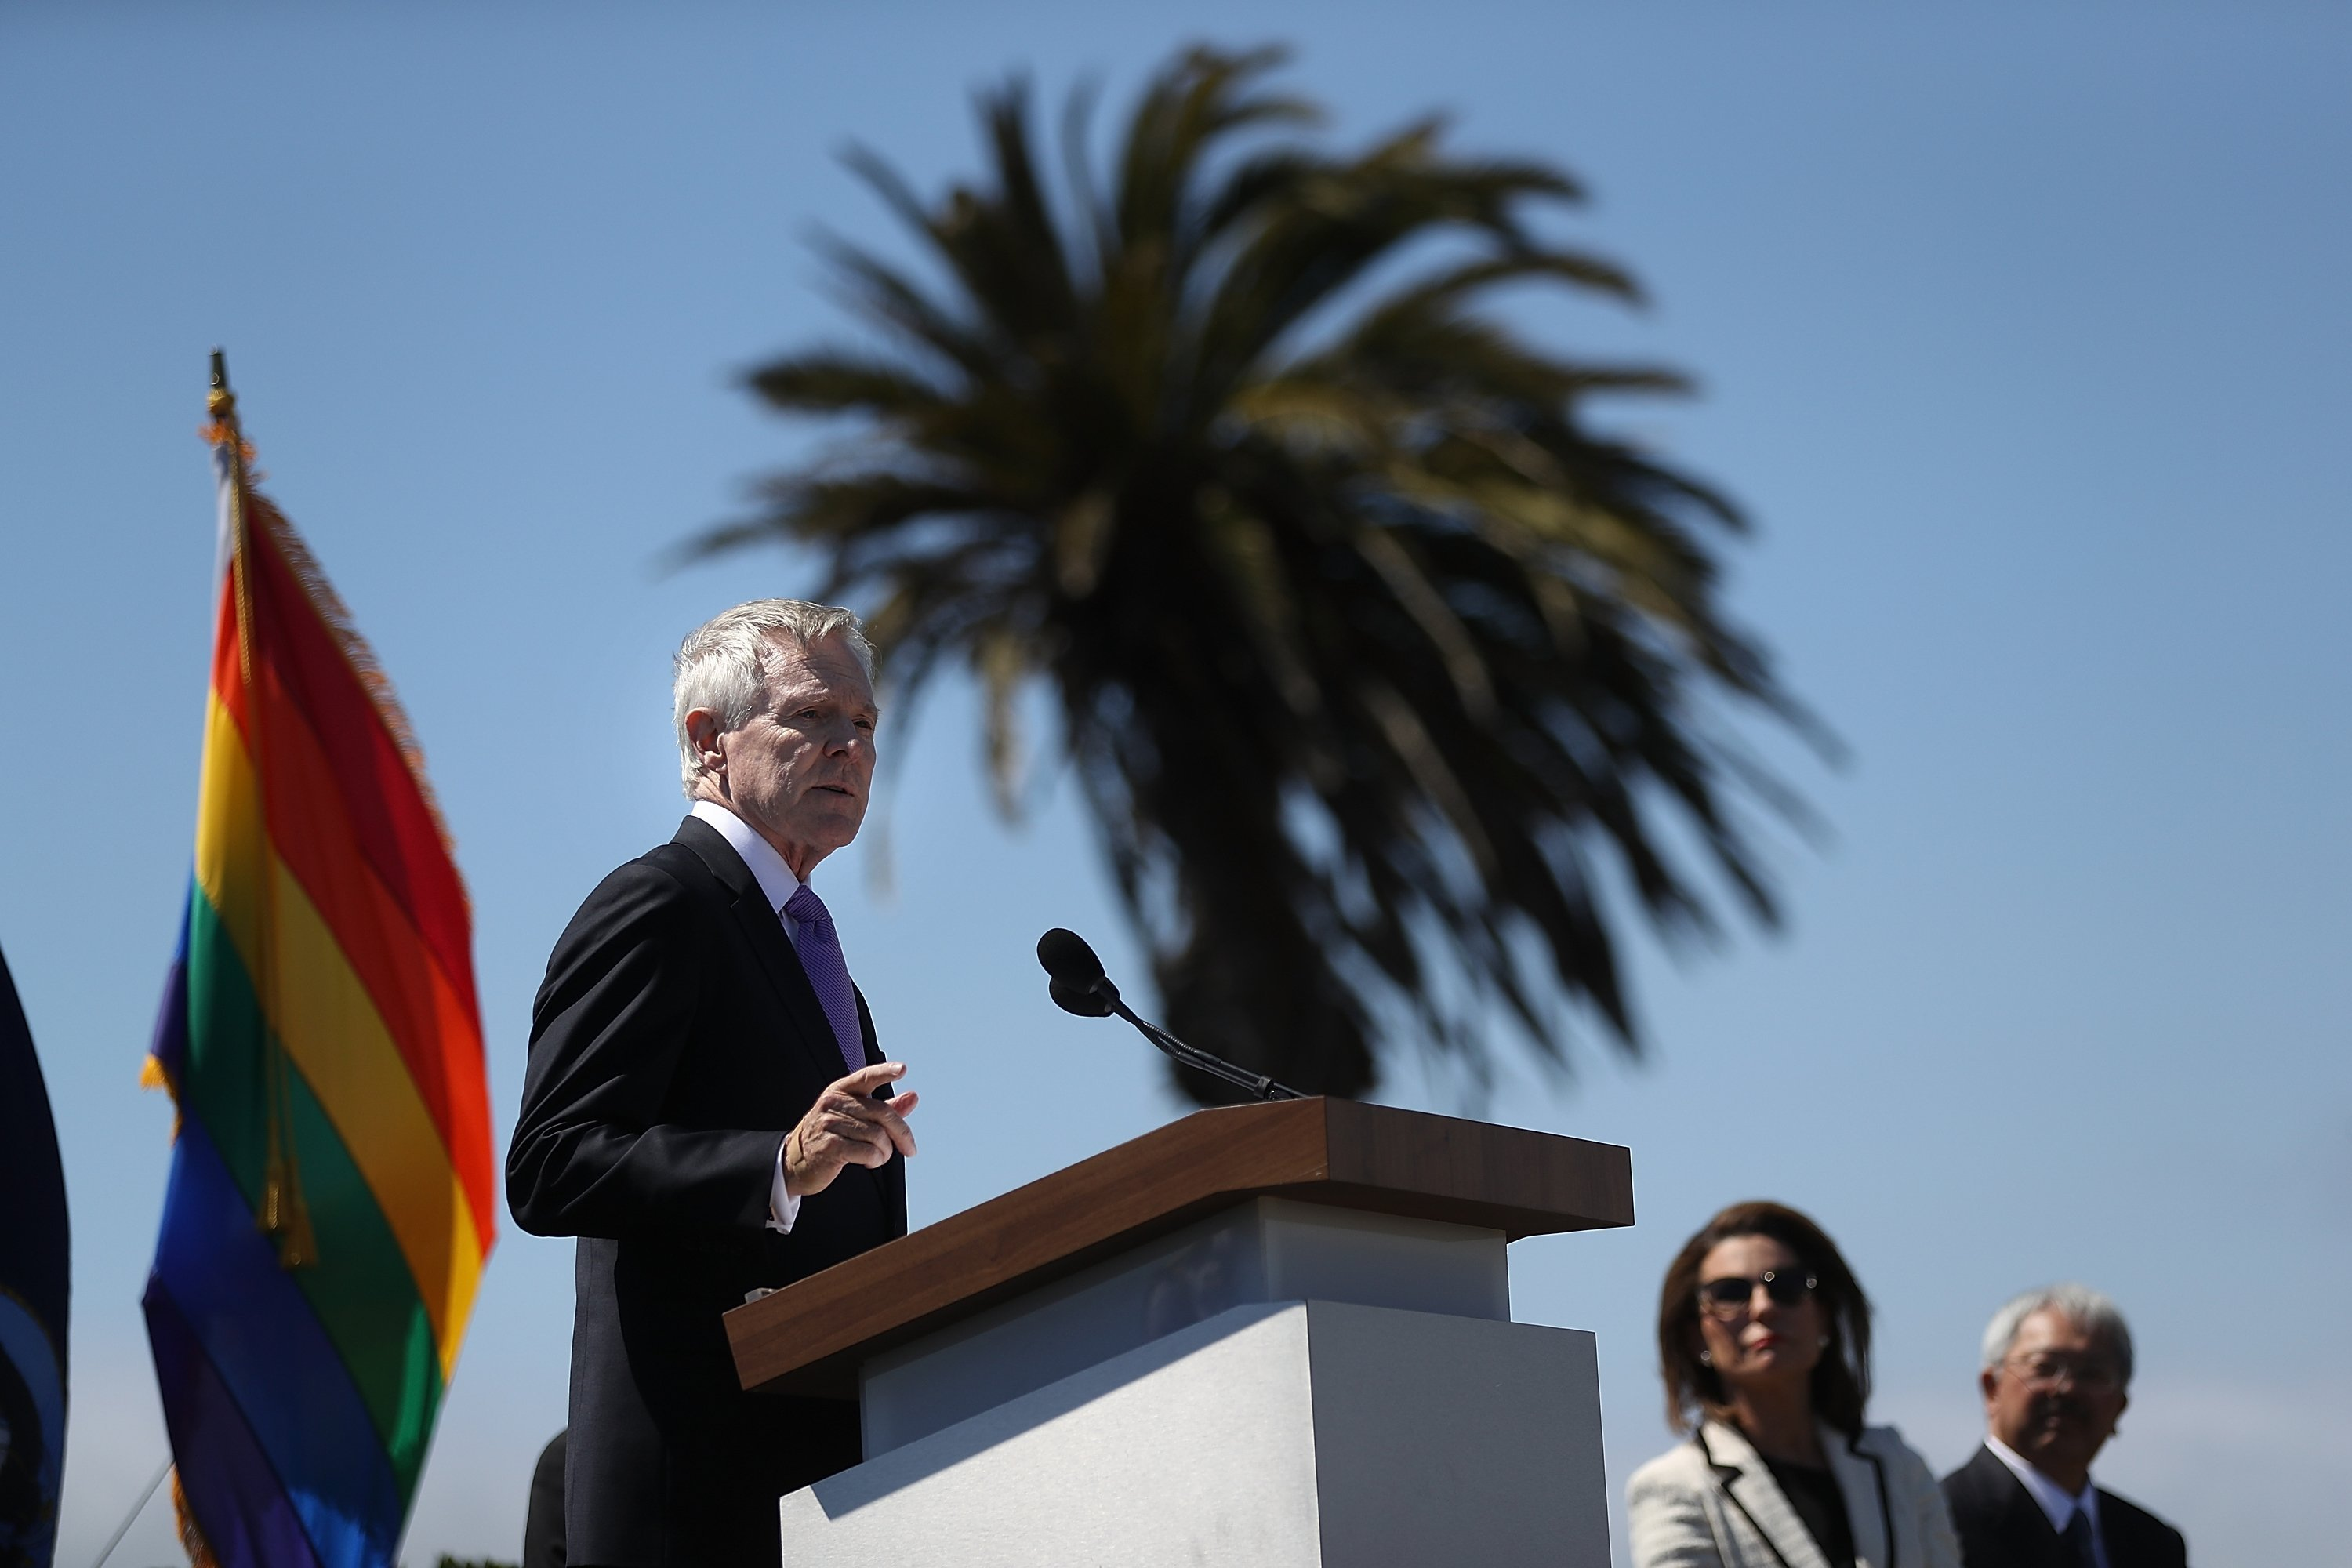 Former Secretary of the Navy Ray Mabus decried President Donald Trump's efforts to prevent transgender individuals from serving in the military.